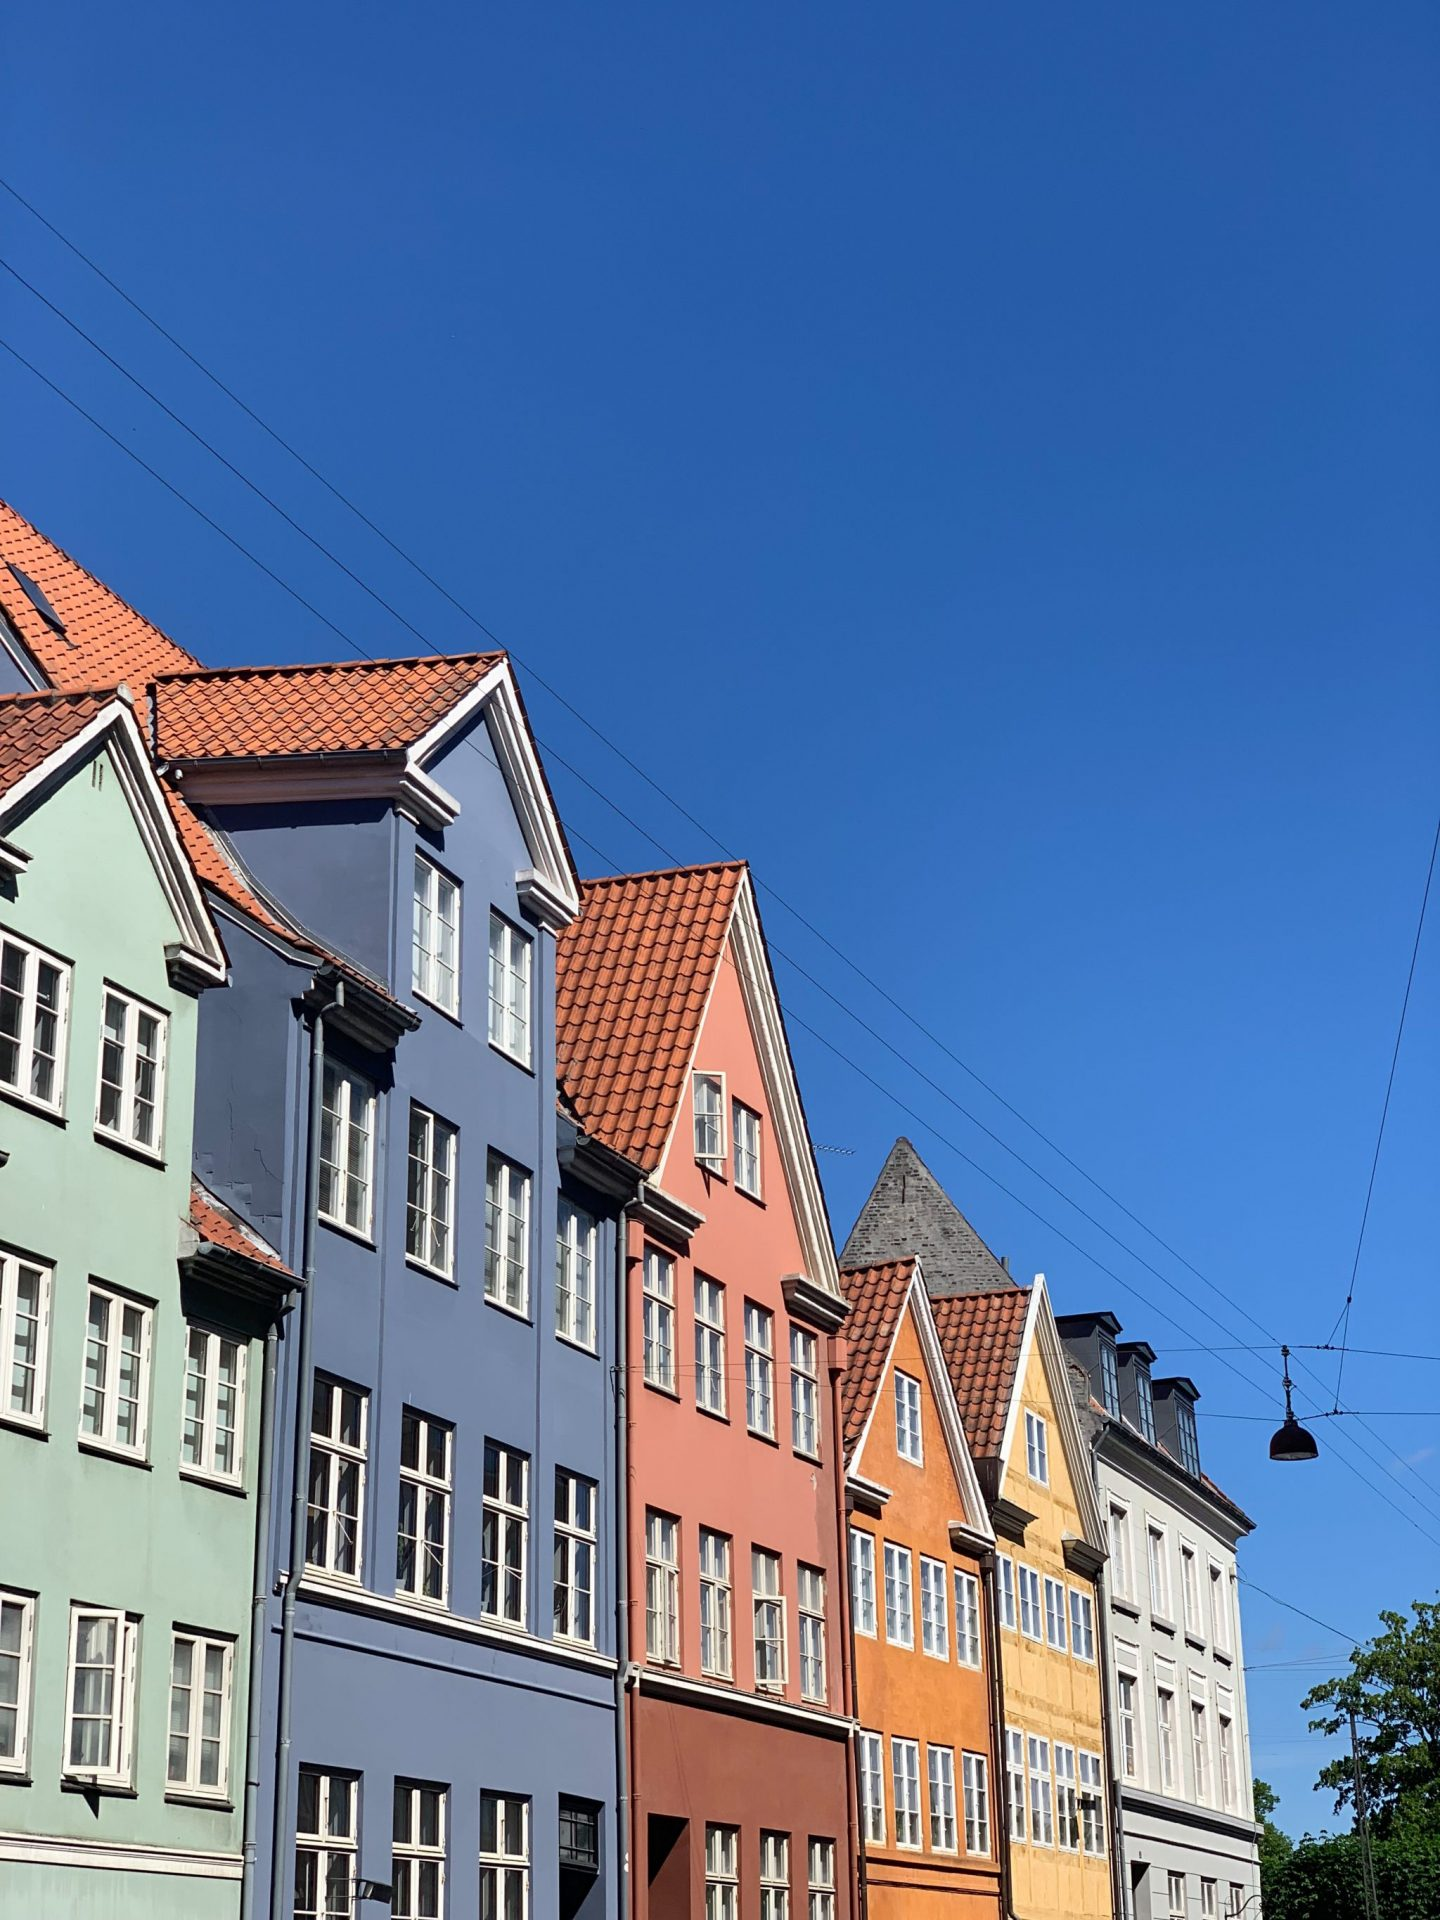 Copenhagen's 3 days of design event, Blue skies, Hello Peagreen